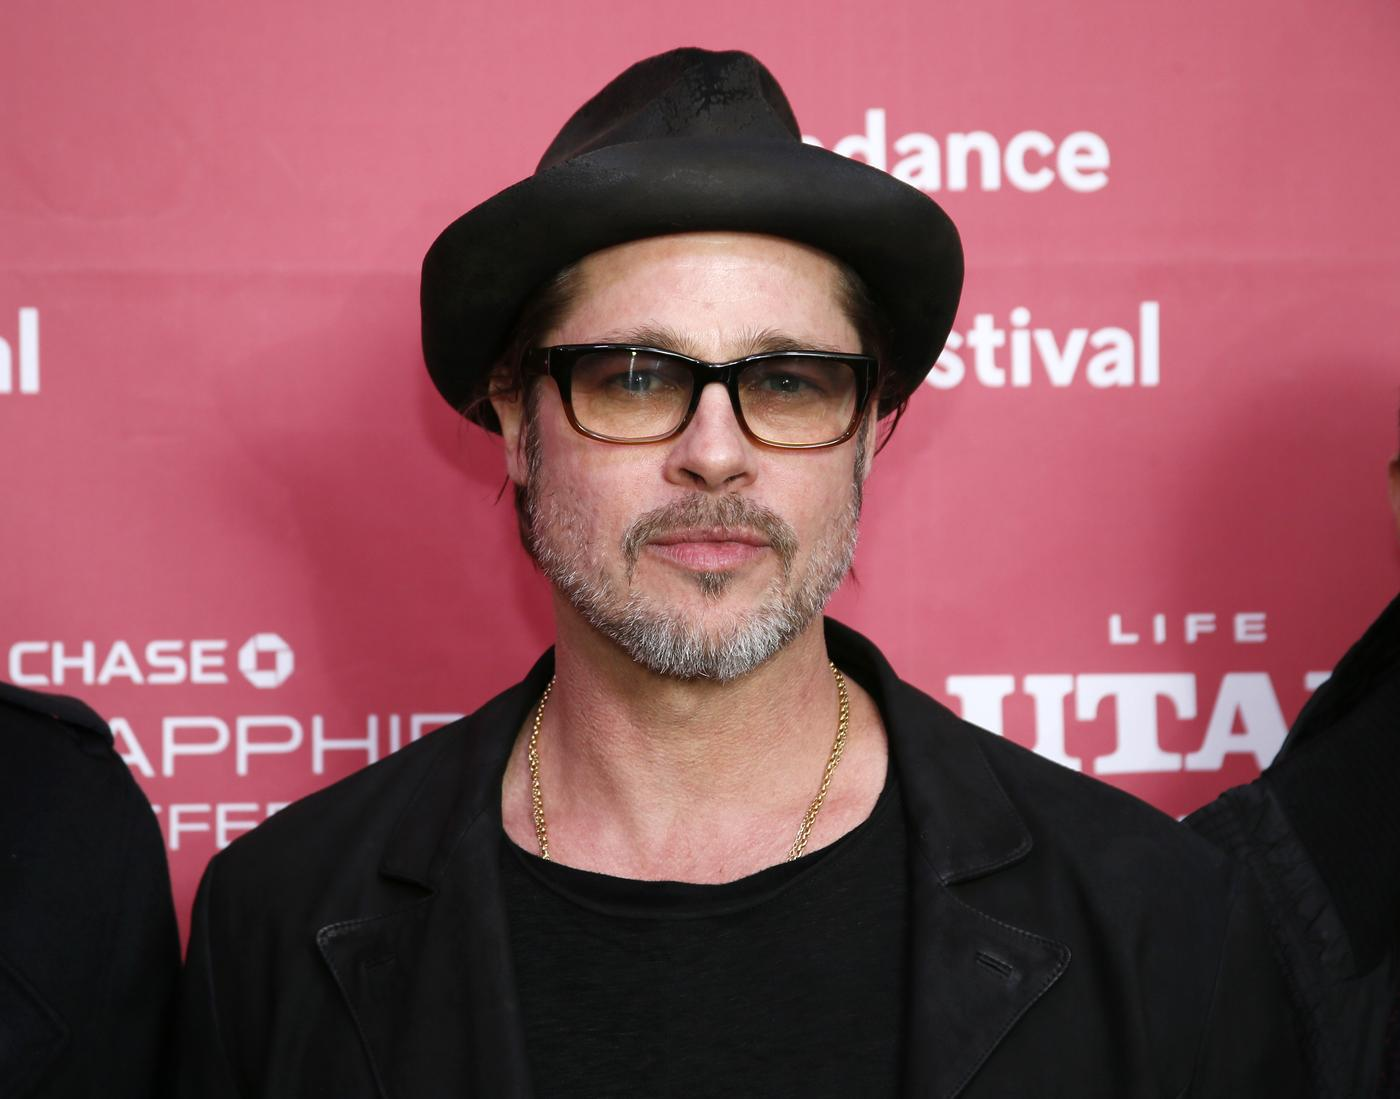 Brad Pitt 'being investigated over child abuse allegations' after Angelina Jolie split